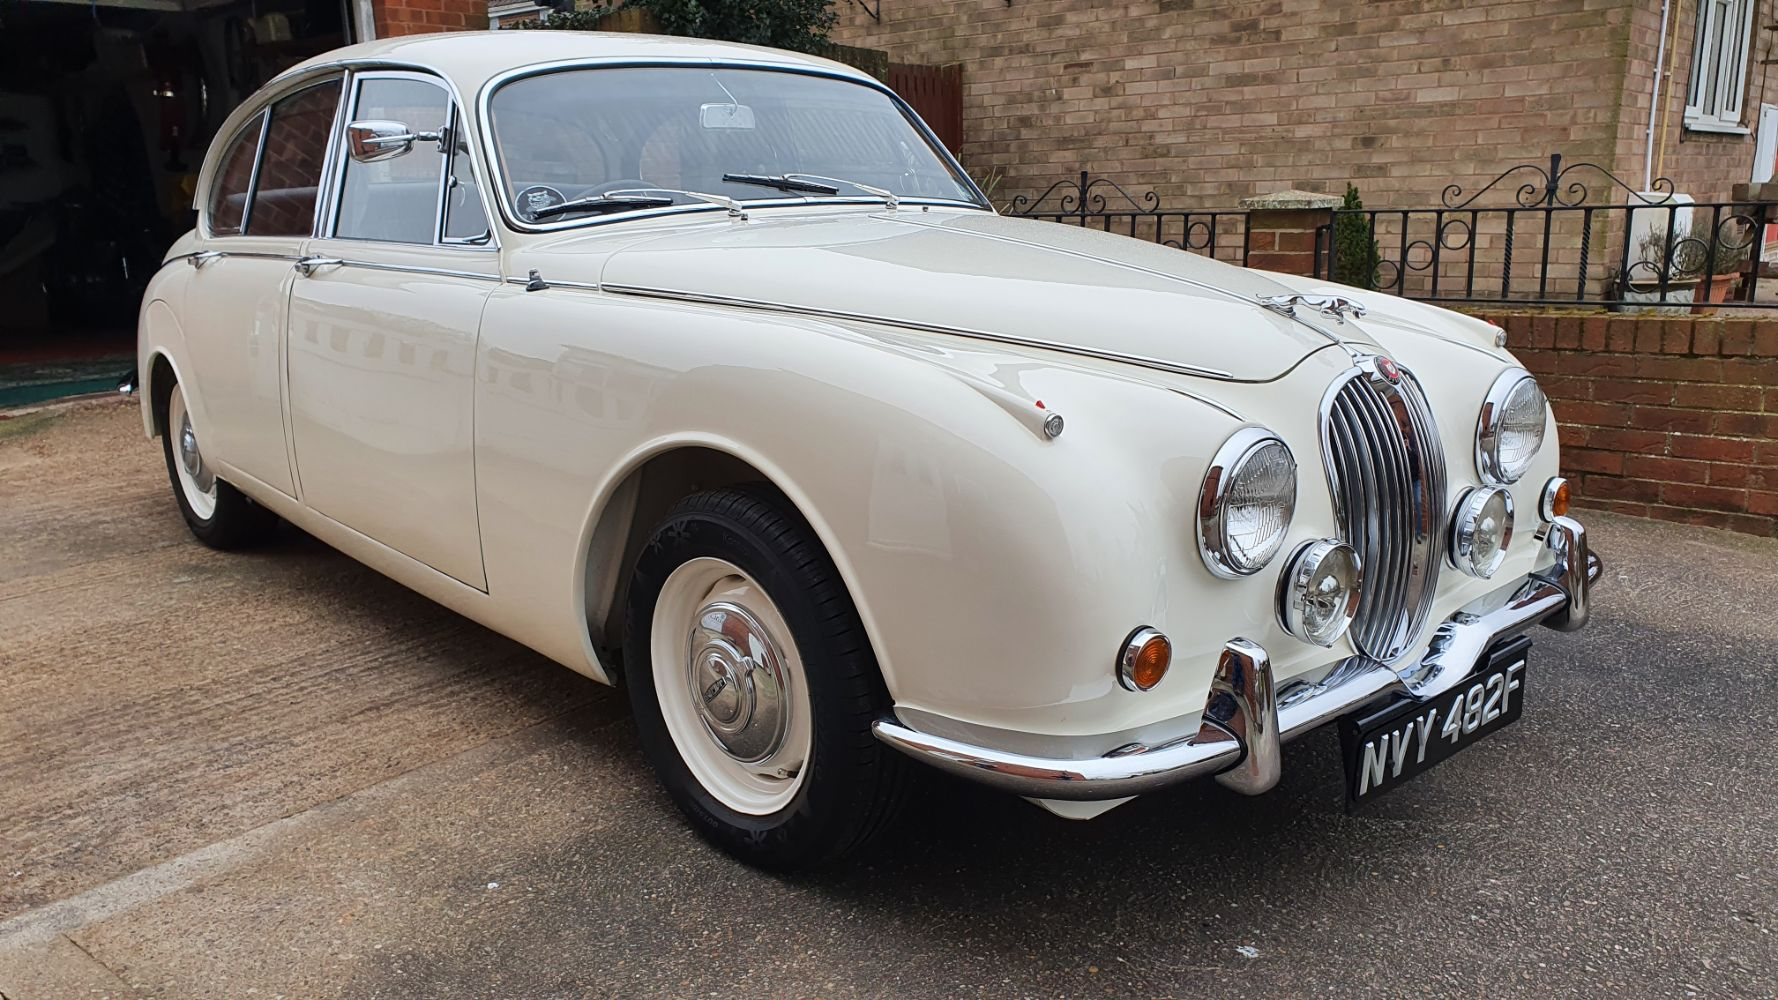 Classic Car and Motorcycle Online Auction starting at 14.00 on 13th March 2021